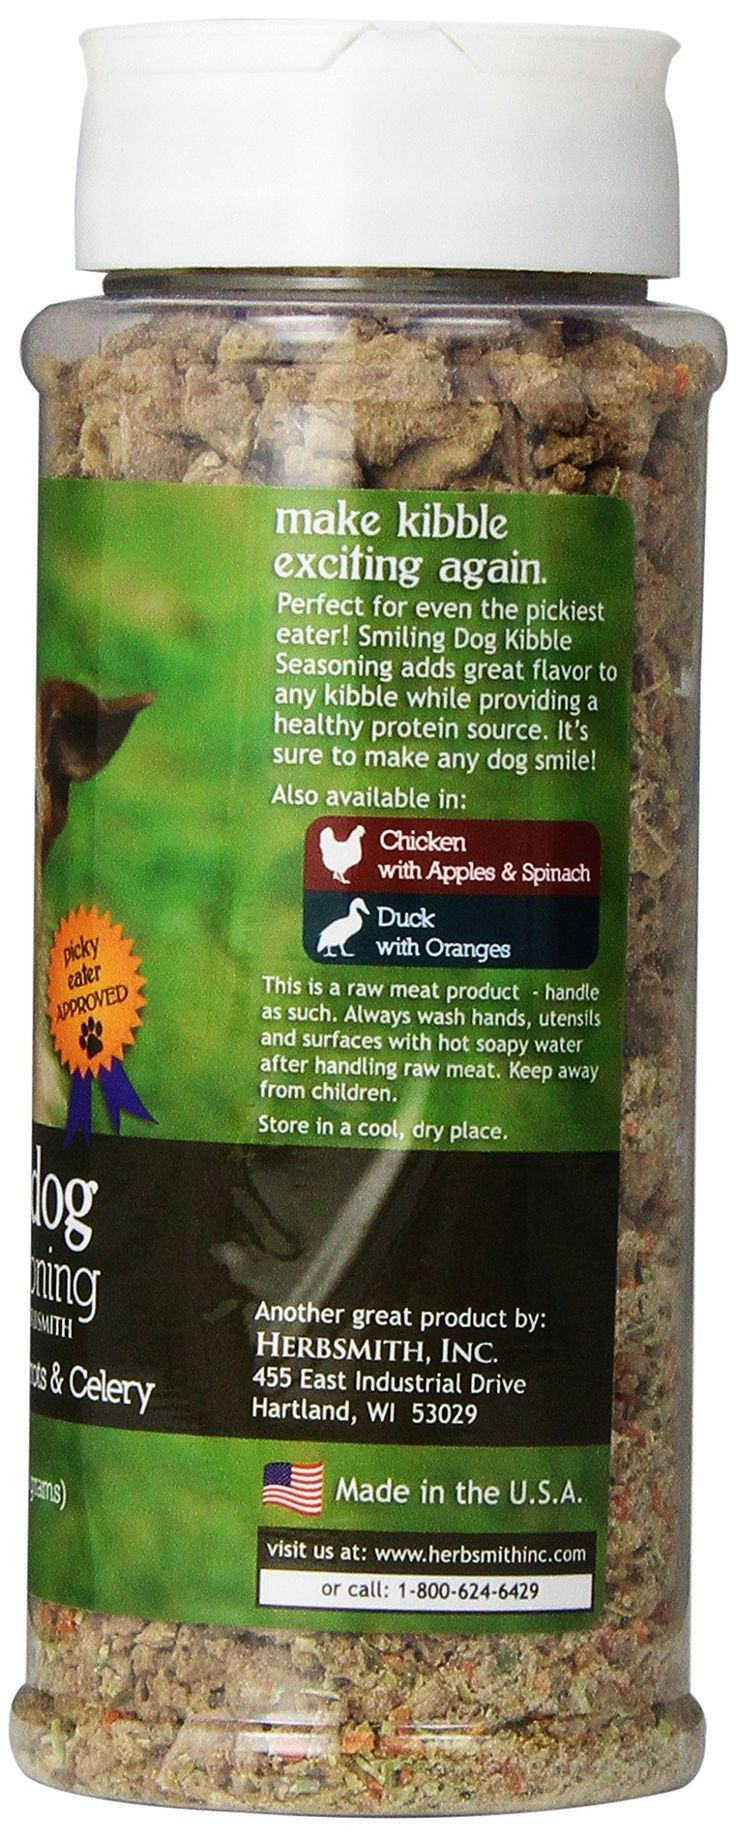 Herbsmith Smiling Dog Freeze Dried Kibble Seasoning with